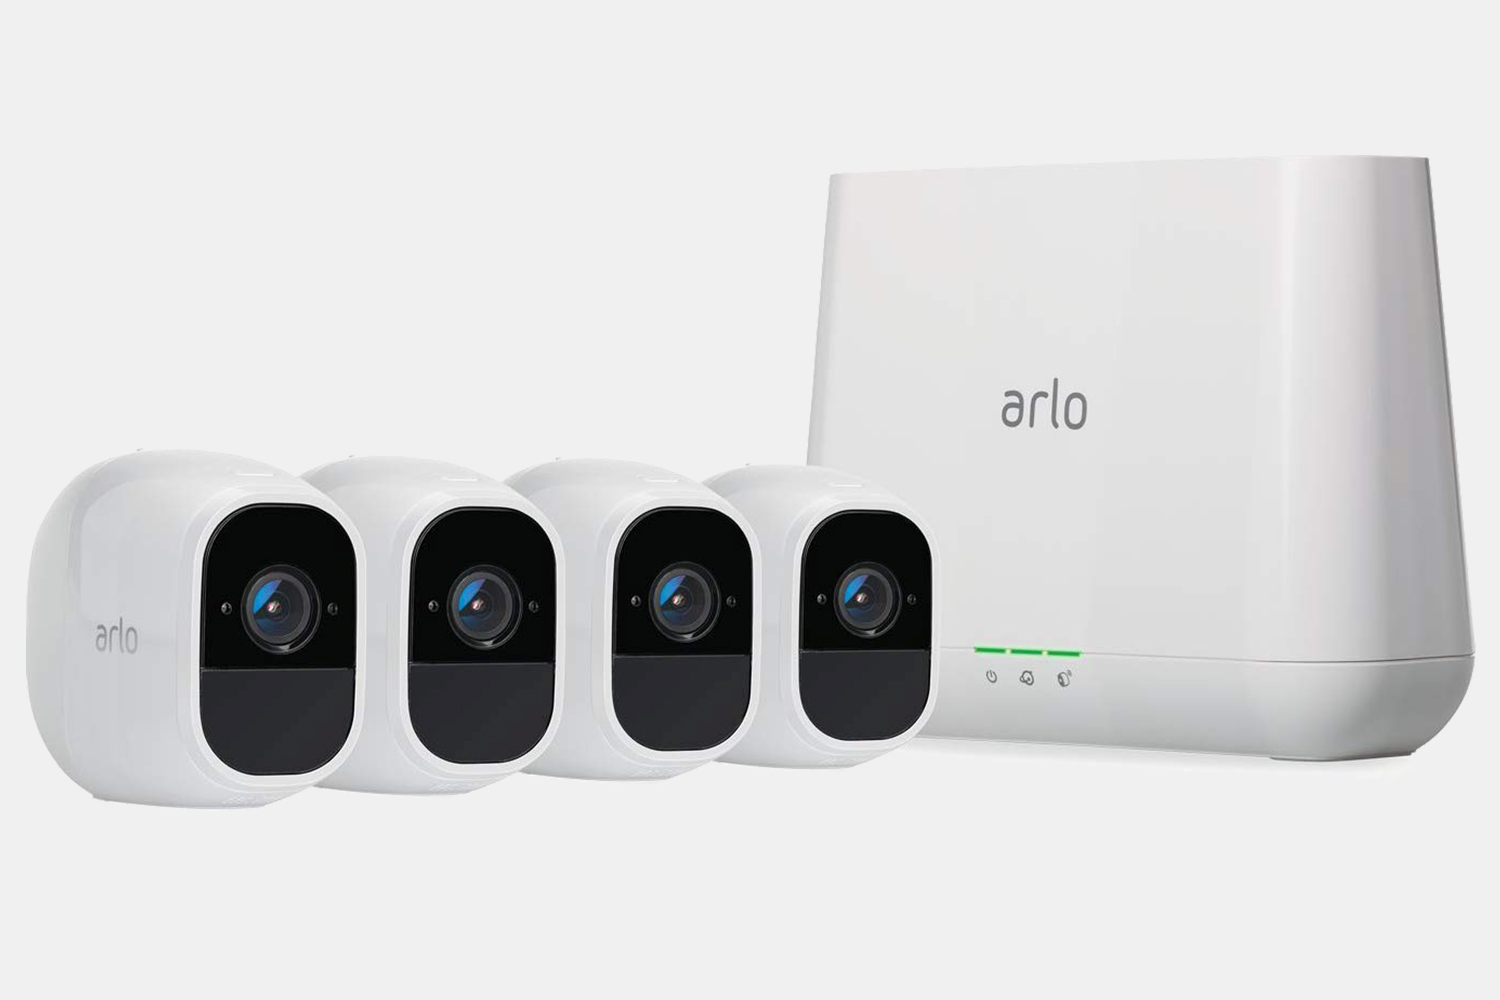 Arlo Pro 2 4-Camera Home Security System